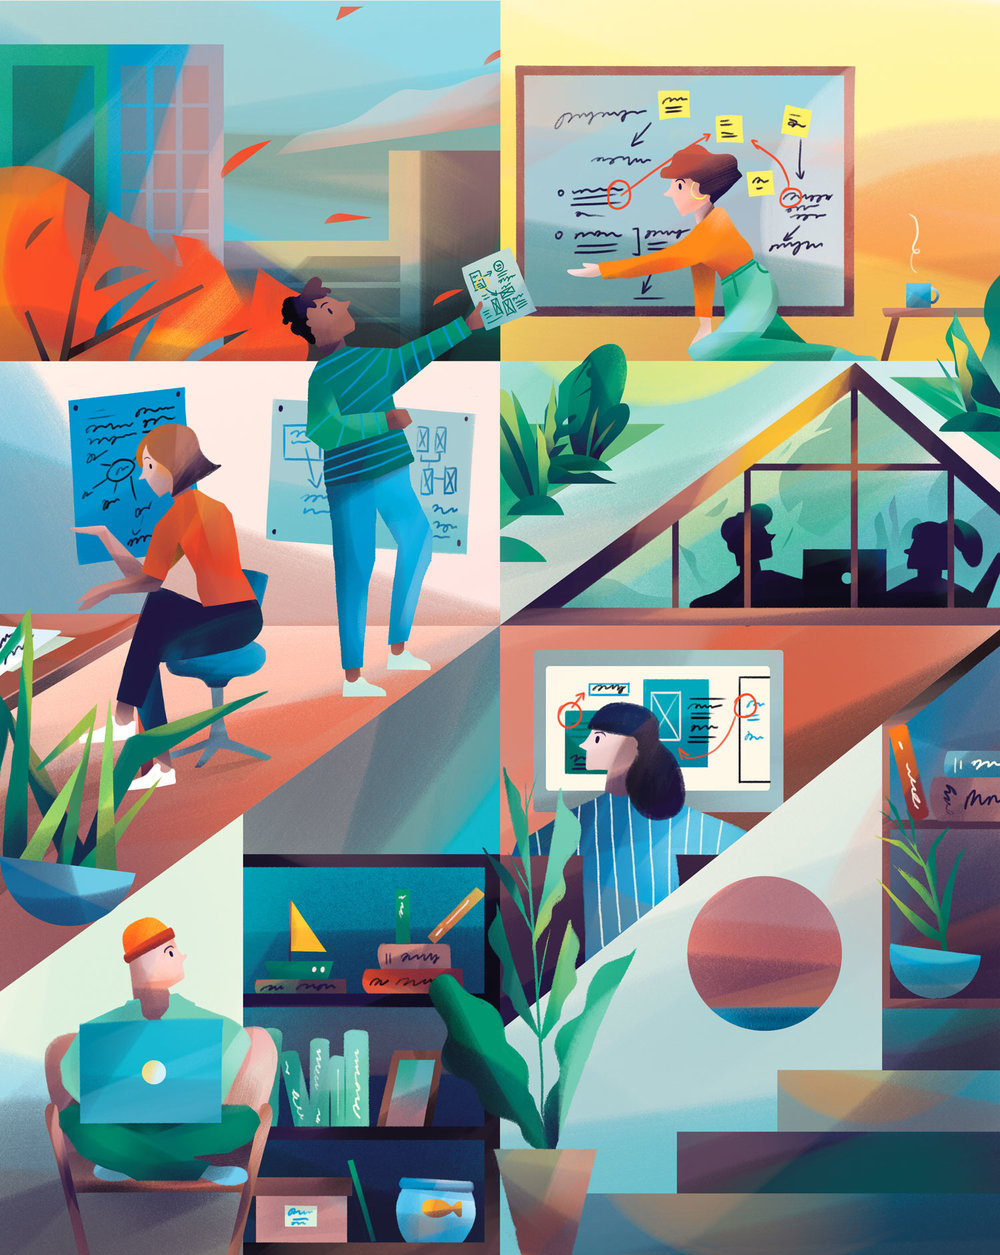 The New Work - Illustration for a new magazine made by the Birch Agency - dedicated to supporting people who are passionate about re-thinking the 9-5 grind and doing something they believe in.